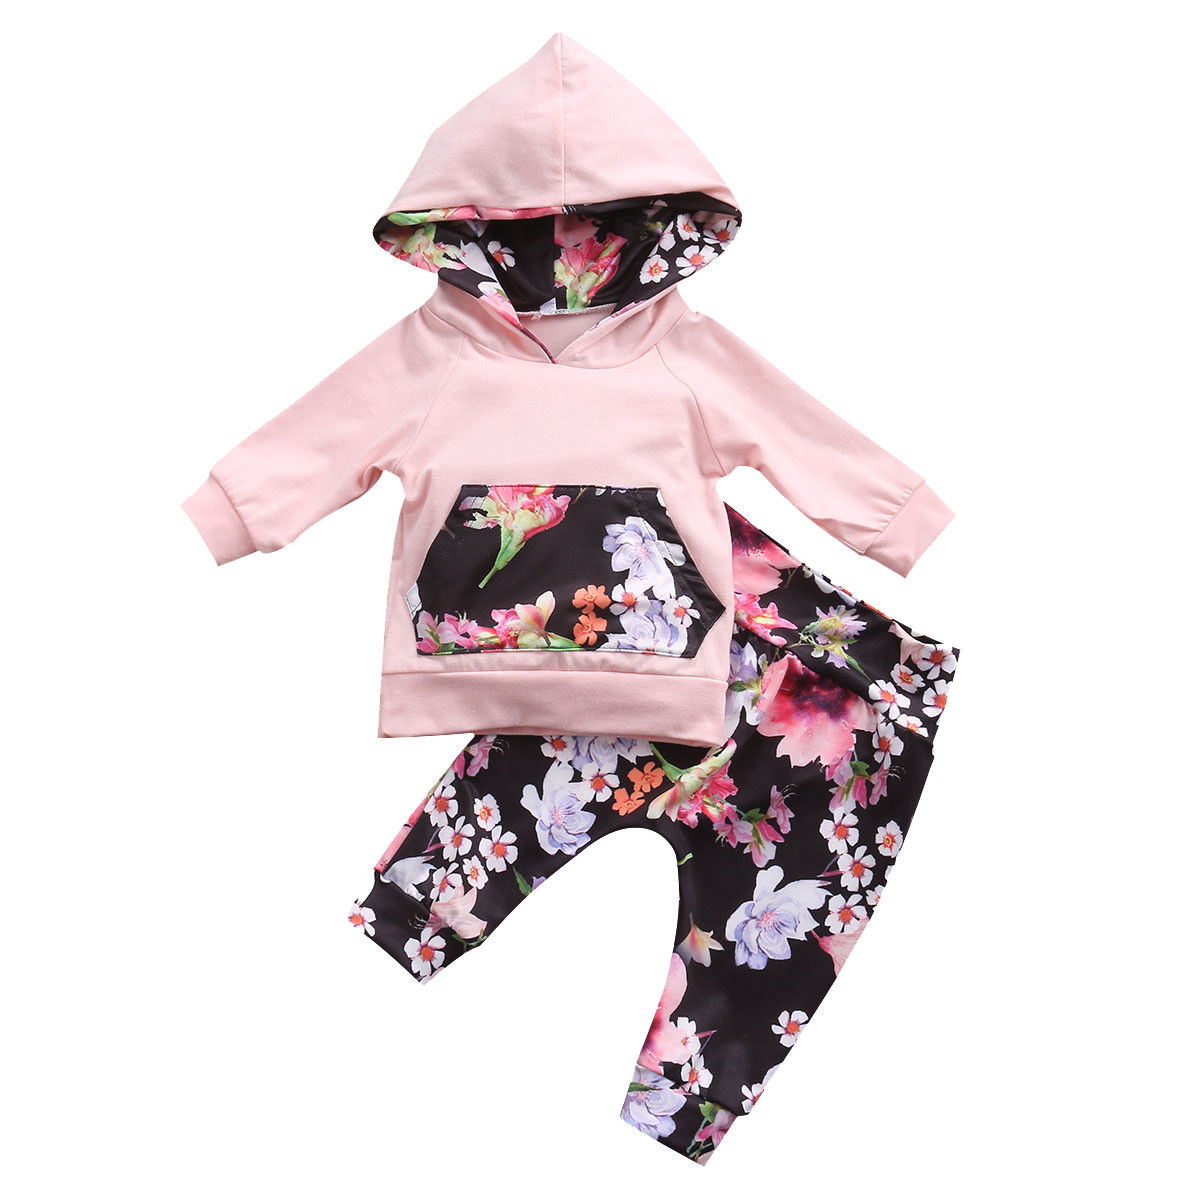 Infant Newborn Baby Girls Clothes Set Hooded Tops Long Sleeve T-shirt Floral Long Leggings Outfit Children Clothing Autumn 2PCs 2pcs newborn baby boys clothes set gold letter mamas boy outfit t shirt pants kids autumn long sleeve tops baby boy clothes set